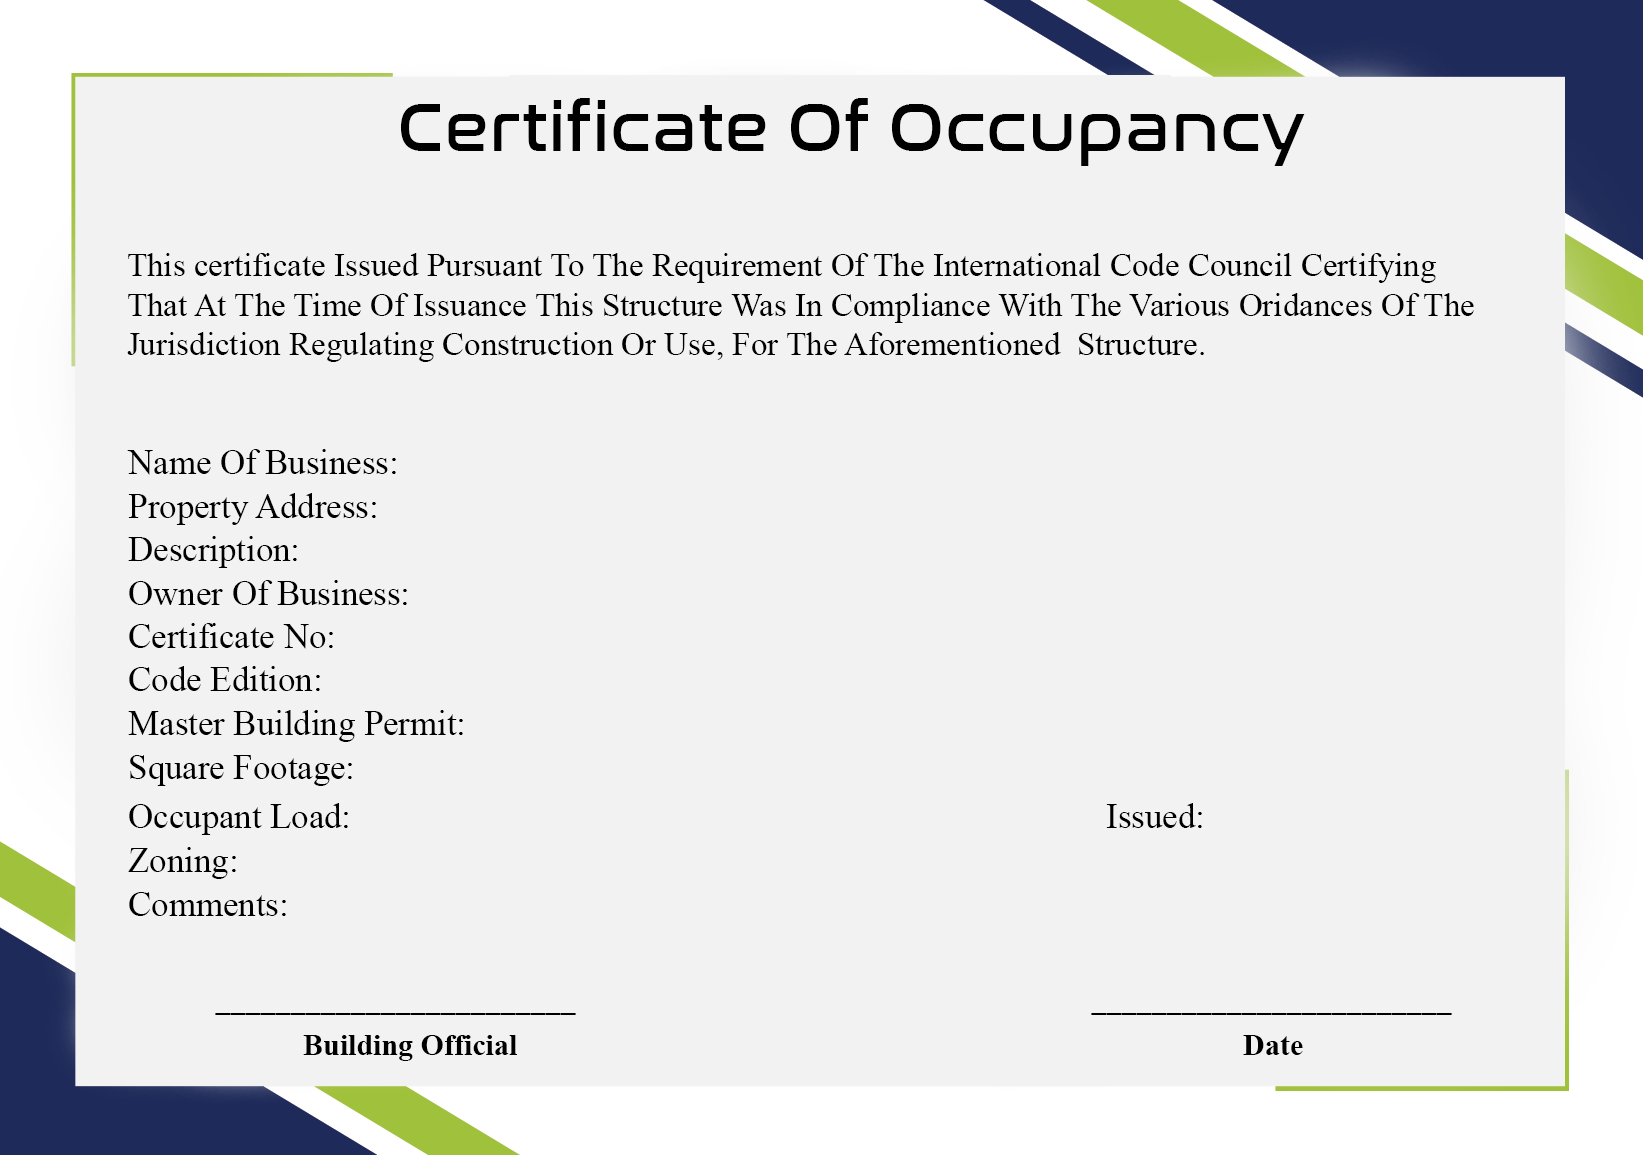 Certificate of Occupancy Sample